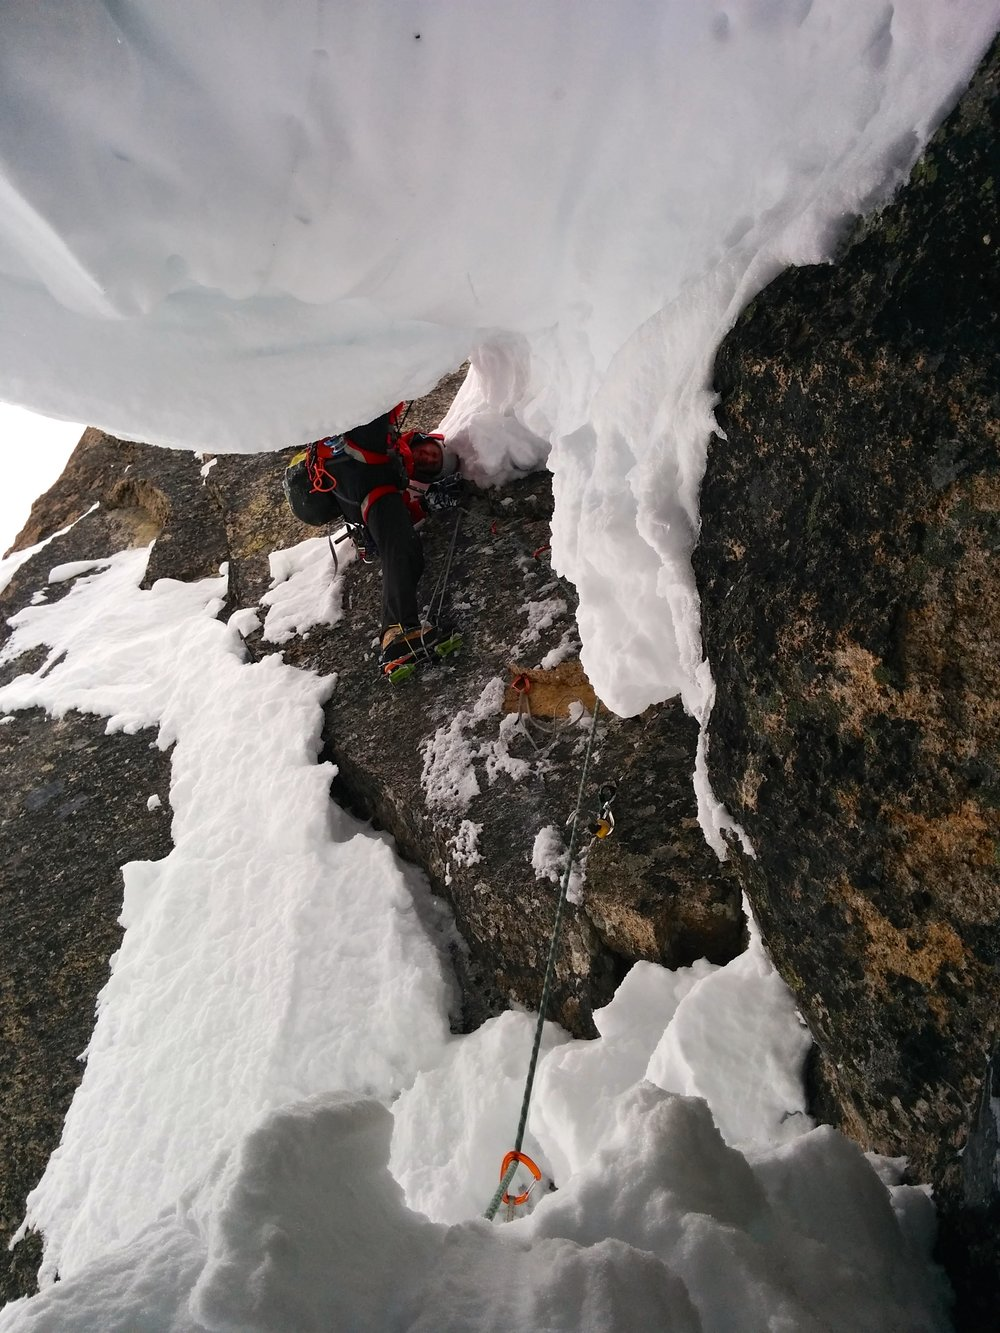 Aiding over the cornice